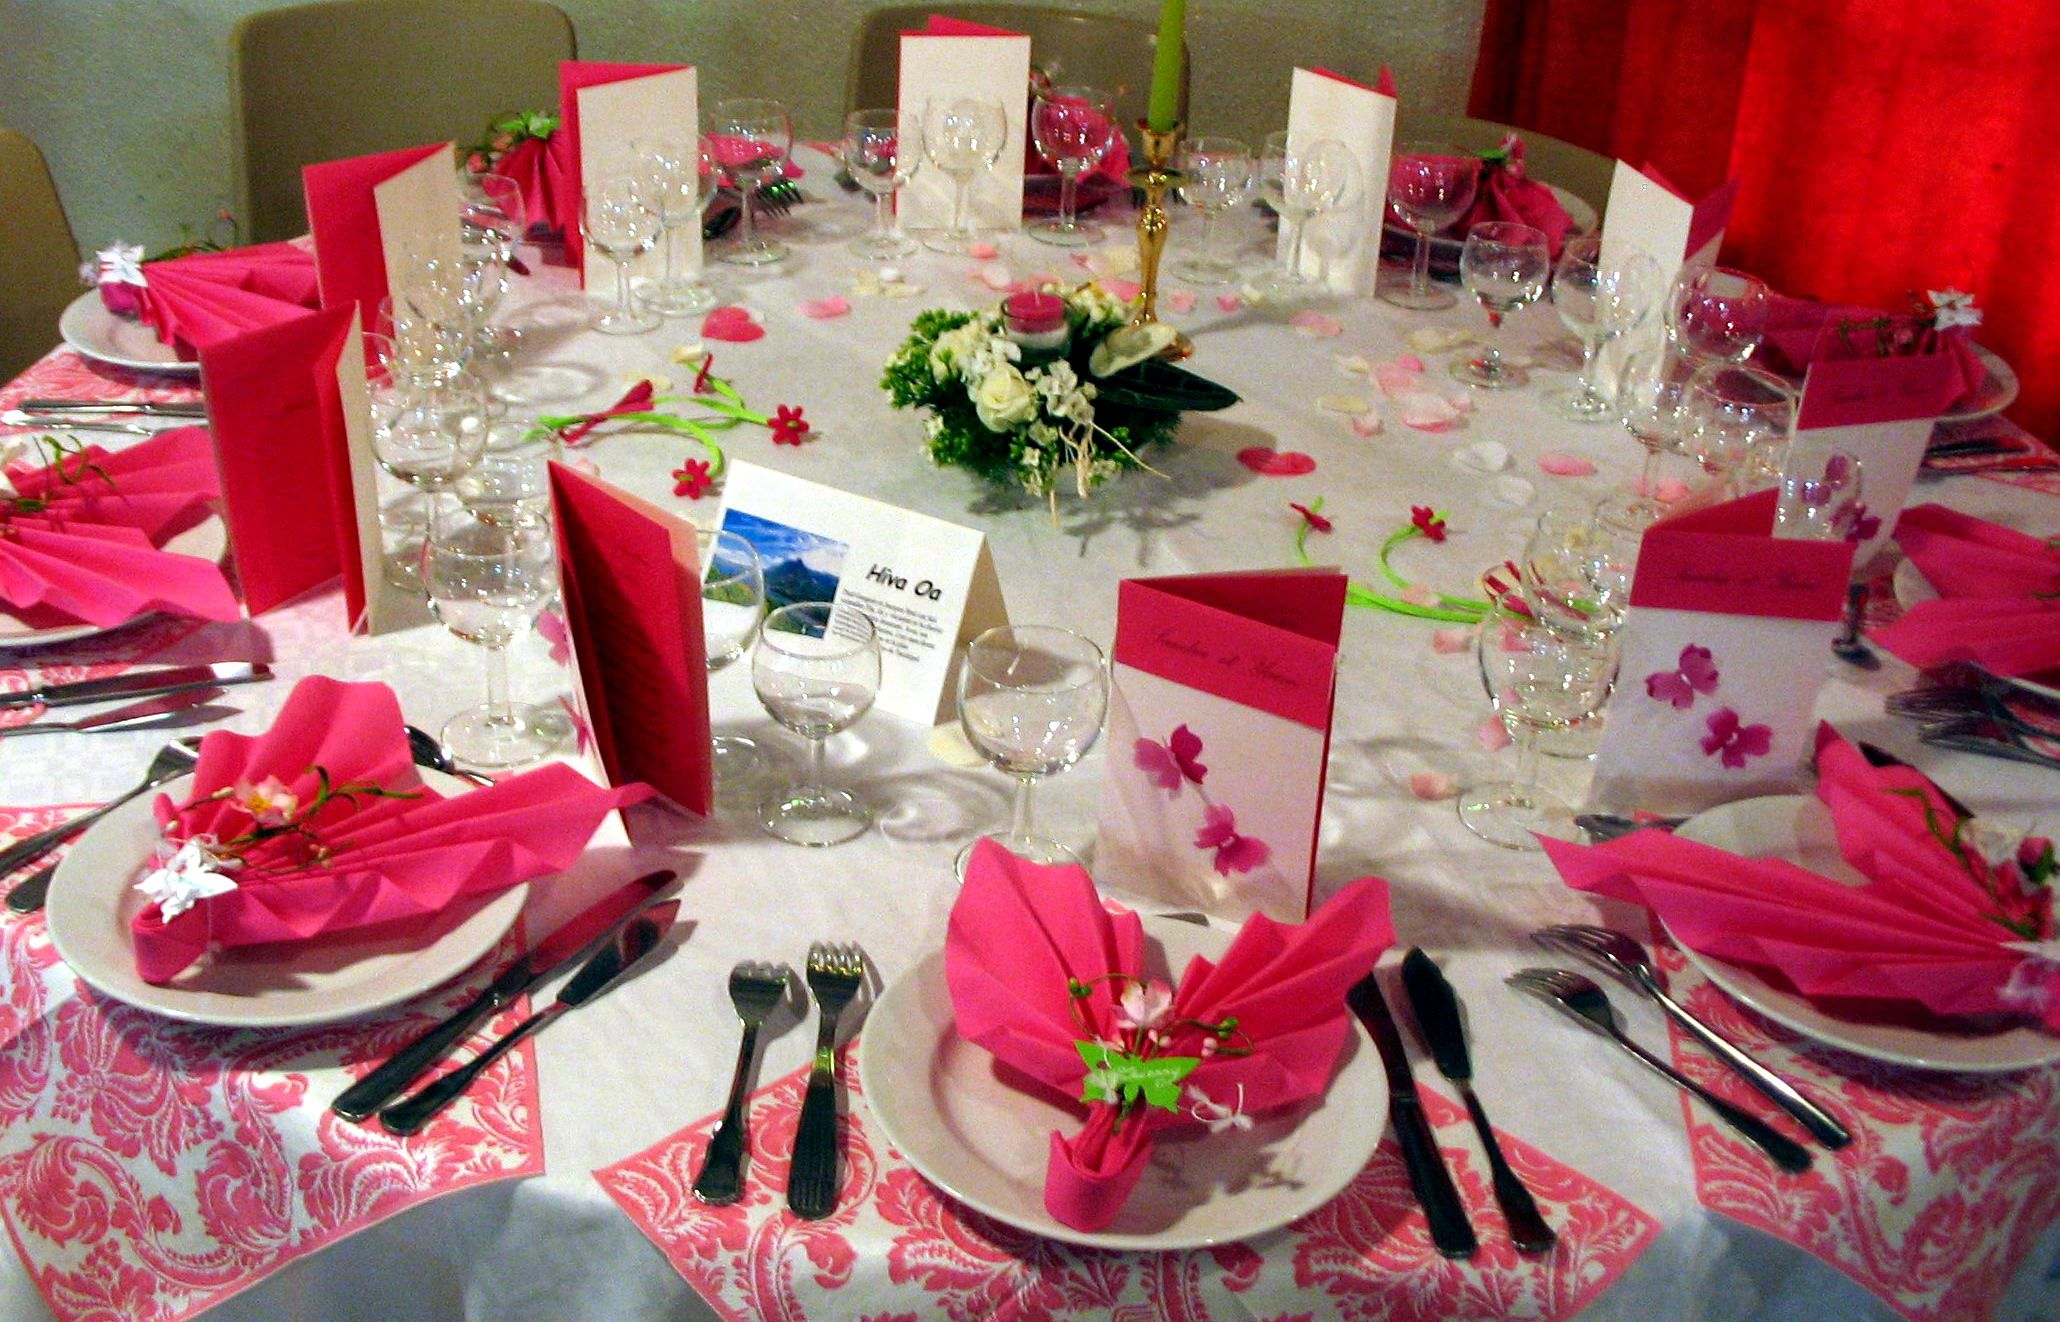 D coration table de mariage photo d co de table mariage rouge et blanc we - Decoration tables mariage ...